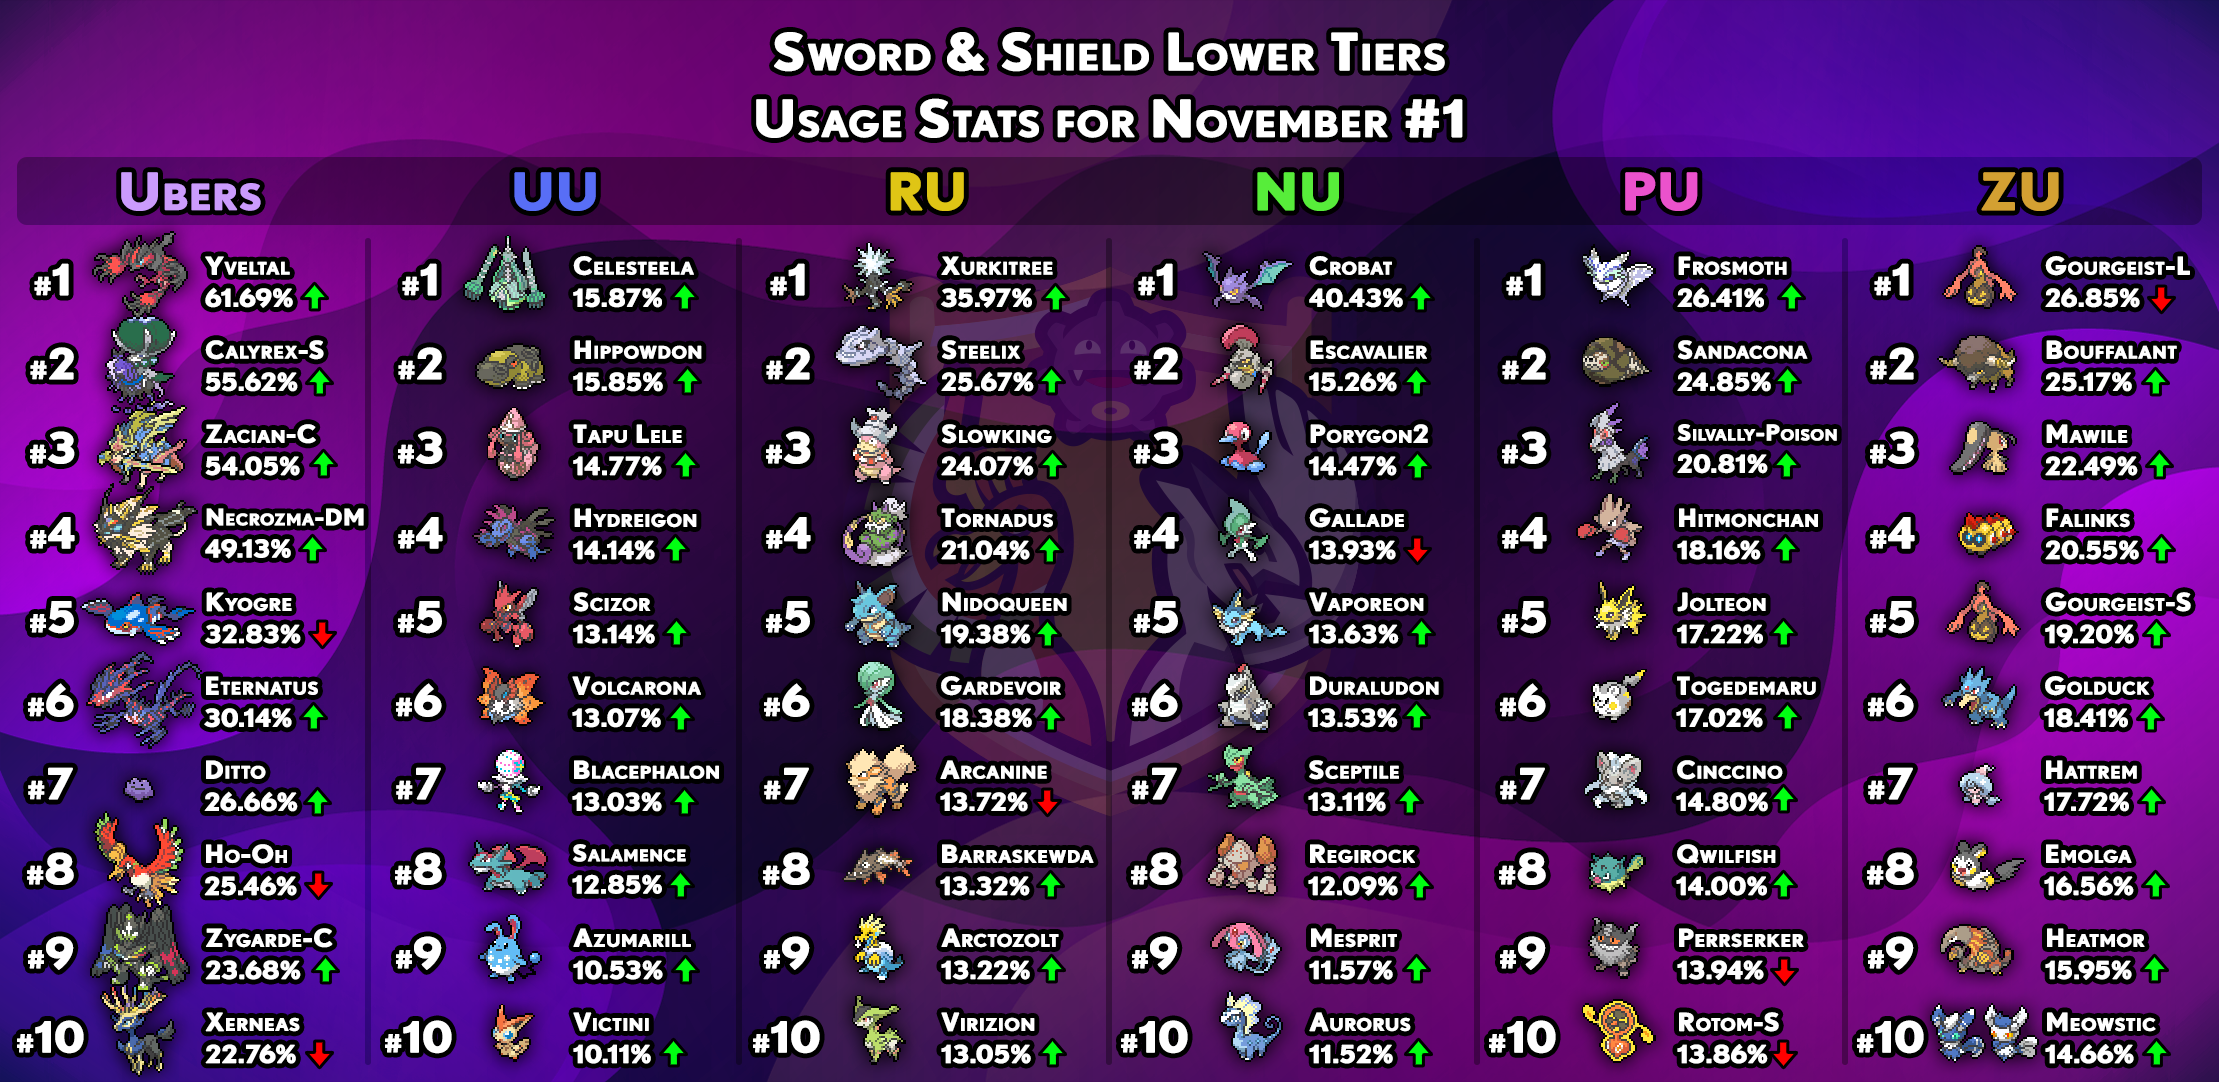 usagestats-gen8-other-tiers-november1.png